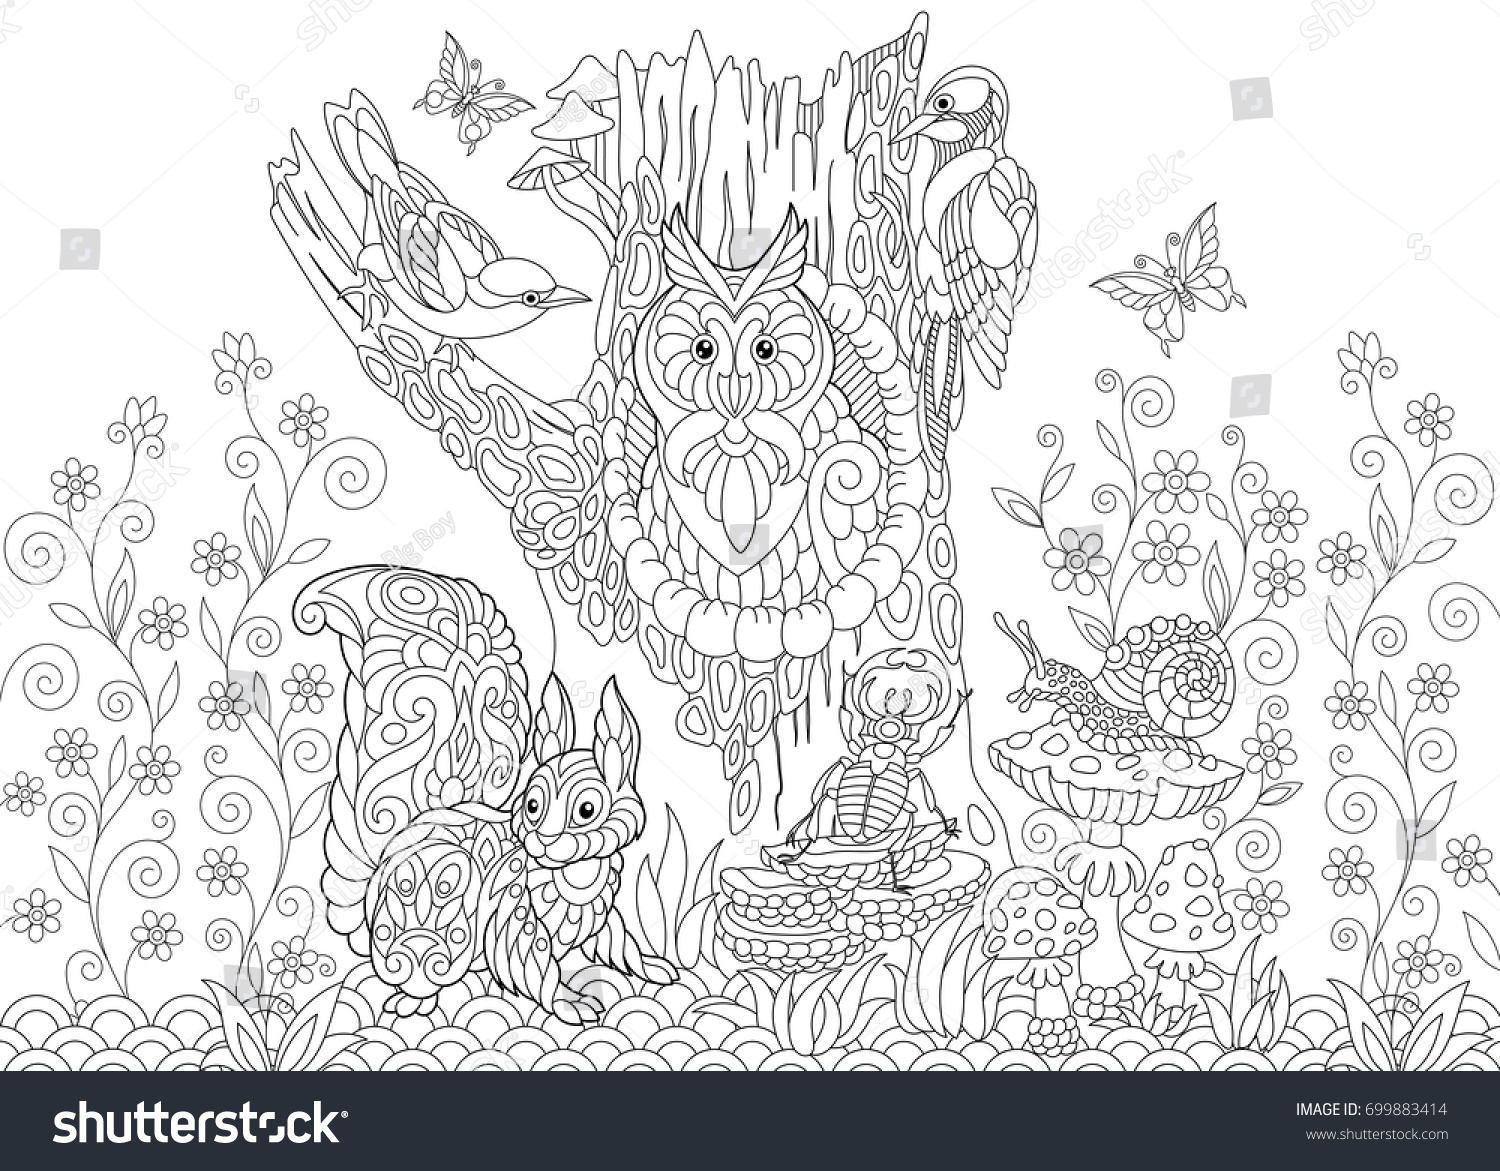 coloring page forest creatures owl cuckoo stock vector 699883414